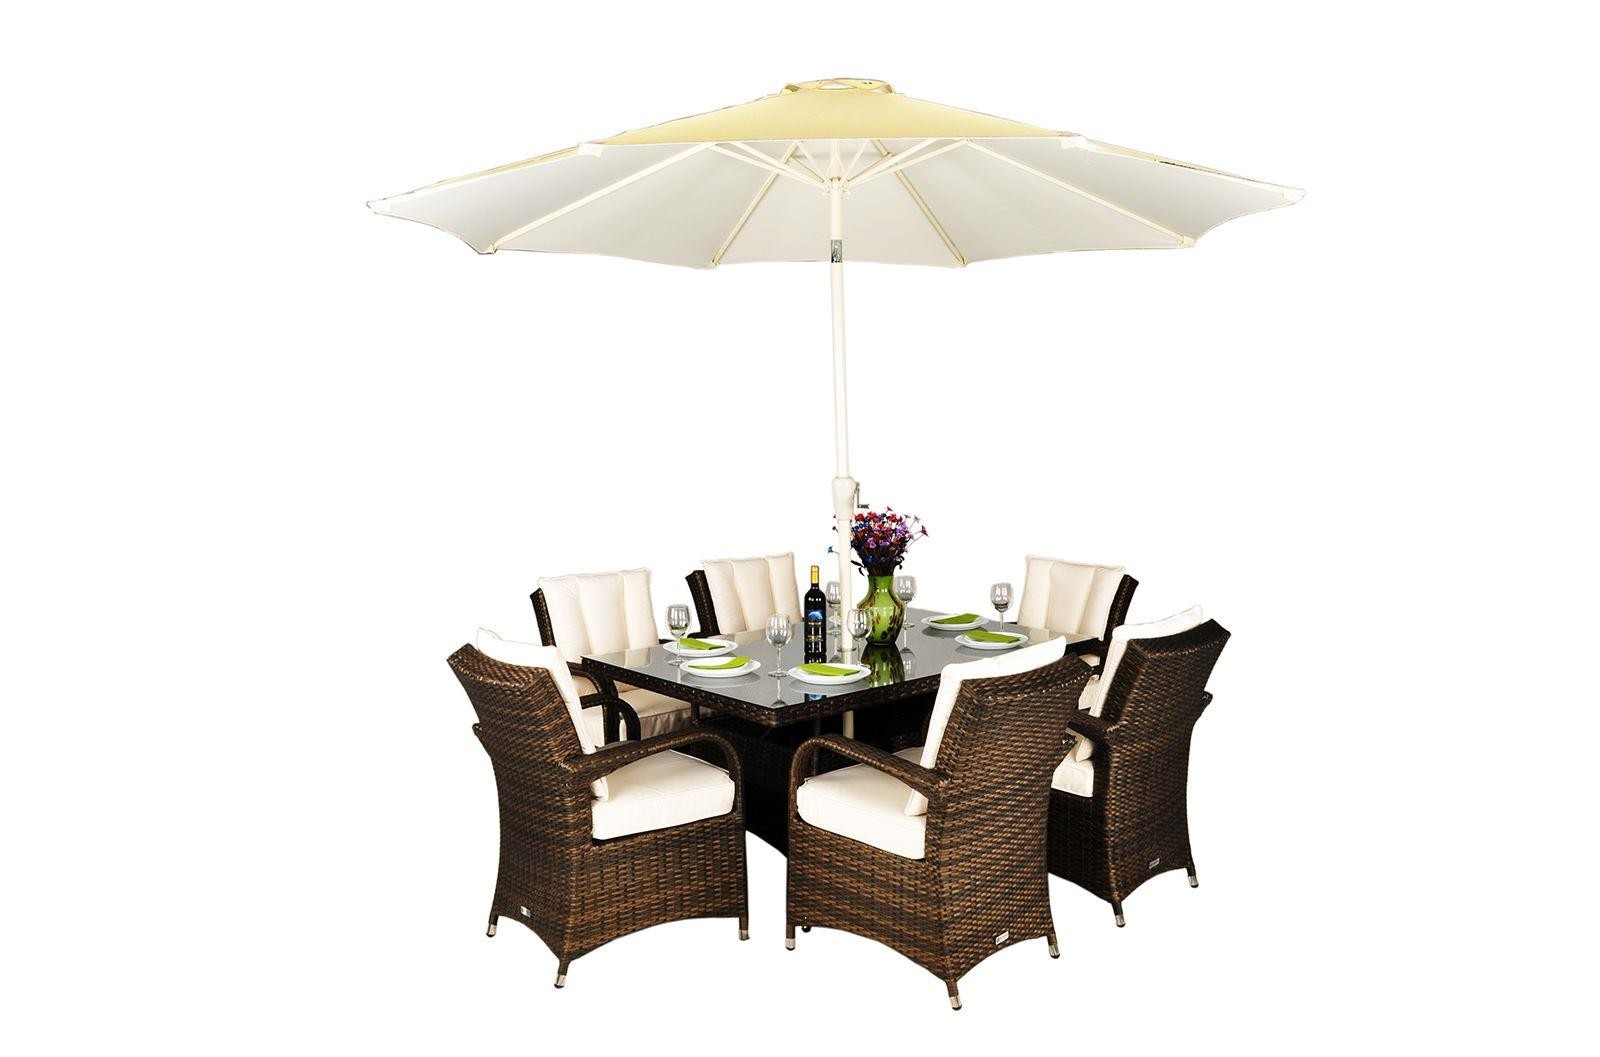 arizona 6 seat garden furniture dining set oak furniture king